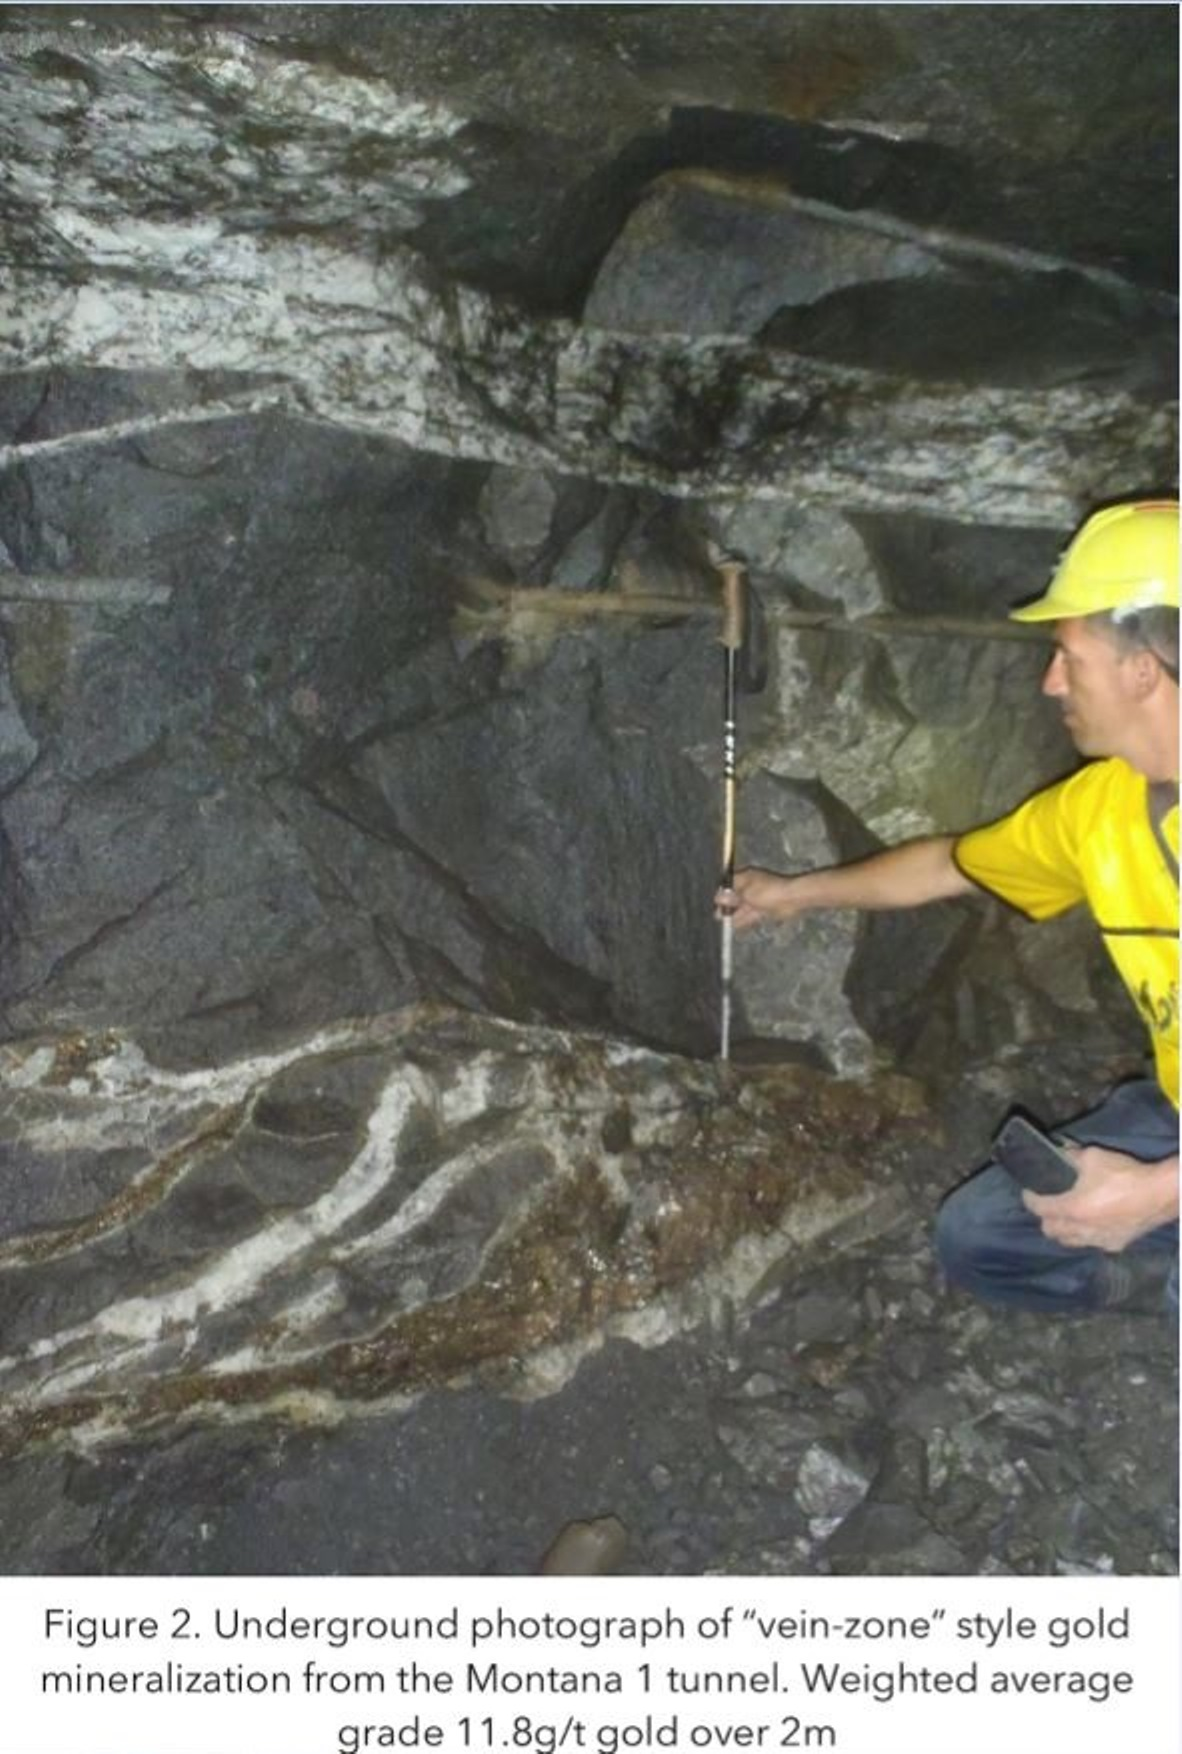 "Underground photograph of ""vein-zone"" style gold mineralization from Montana 1 tunnel. Weighted average grade 11.8g/t gold over 2m"